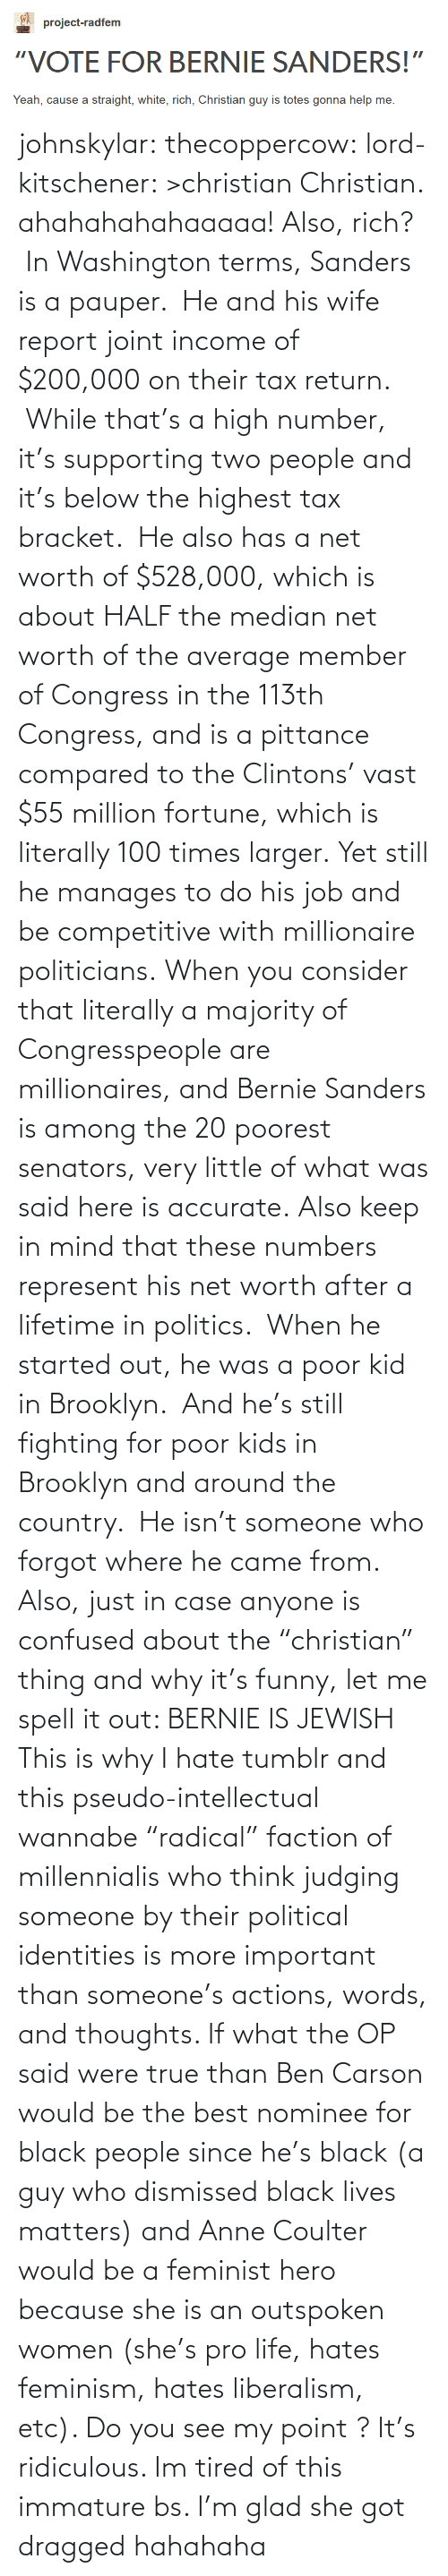 """Net Worth: project-radfem  """"VOTE FOR BERNIE SANDERS!""""  Yeah, cause a straight, white, rich, Christian guy is totes gonna help me. johnskylar:  thecoppercow:  lord-kitschener:  >christian  Christian.  ahahahahahaaaaa! Also, rich? In Washington terms, Sanders is a pauper. He and his wife report joint income of $200,000 on their tax return. While that's a high number, it's supporting two people and it's below the highest tax bracket. He also has a net worth of $528,000, which is about HALF the median net worth of the average member of Congress in the 113th Congress, and is a pittance compared to the Clintons' vast $55 million fortune, which is literally 100 times larger. Yet still he manages to do his job and be competitive with millionaire politicians. When you consider that literally a majority of Congresspeople are millionaires, and Bernie Sanders is among the 20 poorest senators, very little of what was said here is accurate. Also keep in mind that these numbers represent his net worth after a lifetime in politics. When he started out, he was a poor kid in Brooklyn. And he's still fighting for poor kids in Brooklyn and around the country. He isn't someone who forgot where he came from. Also, just in case anyone is confused about the""""christian"""" thing and why it's funny, let me spell it out: BERNIE IS JEWISH   This is why I hate tumblr and this pseudo-intellectual wannabe """"radical"""" faction of millennialis who think judging someone by their political identities is more important than someone's actions, words, and thoughts. If what the OP said were true than Ben Carson would be the best nominee for black people since he's black (a guy who dismissed black lives matters) and Anne Coulter would be a feminist hero because she is an outspoken women (she's pro life, hates feminism, hates liberalism, etc). Do you see my point ? It's ridiculous. Im tired of this immature bs. I'm glad she got dragged hahahaha"""